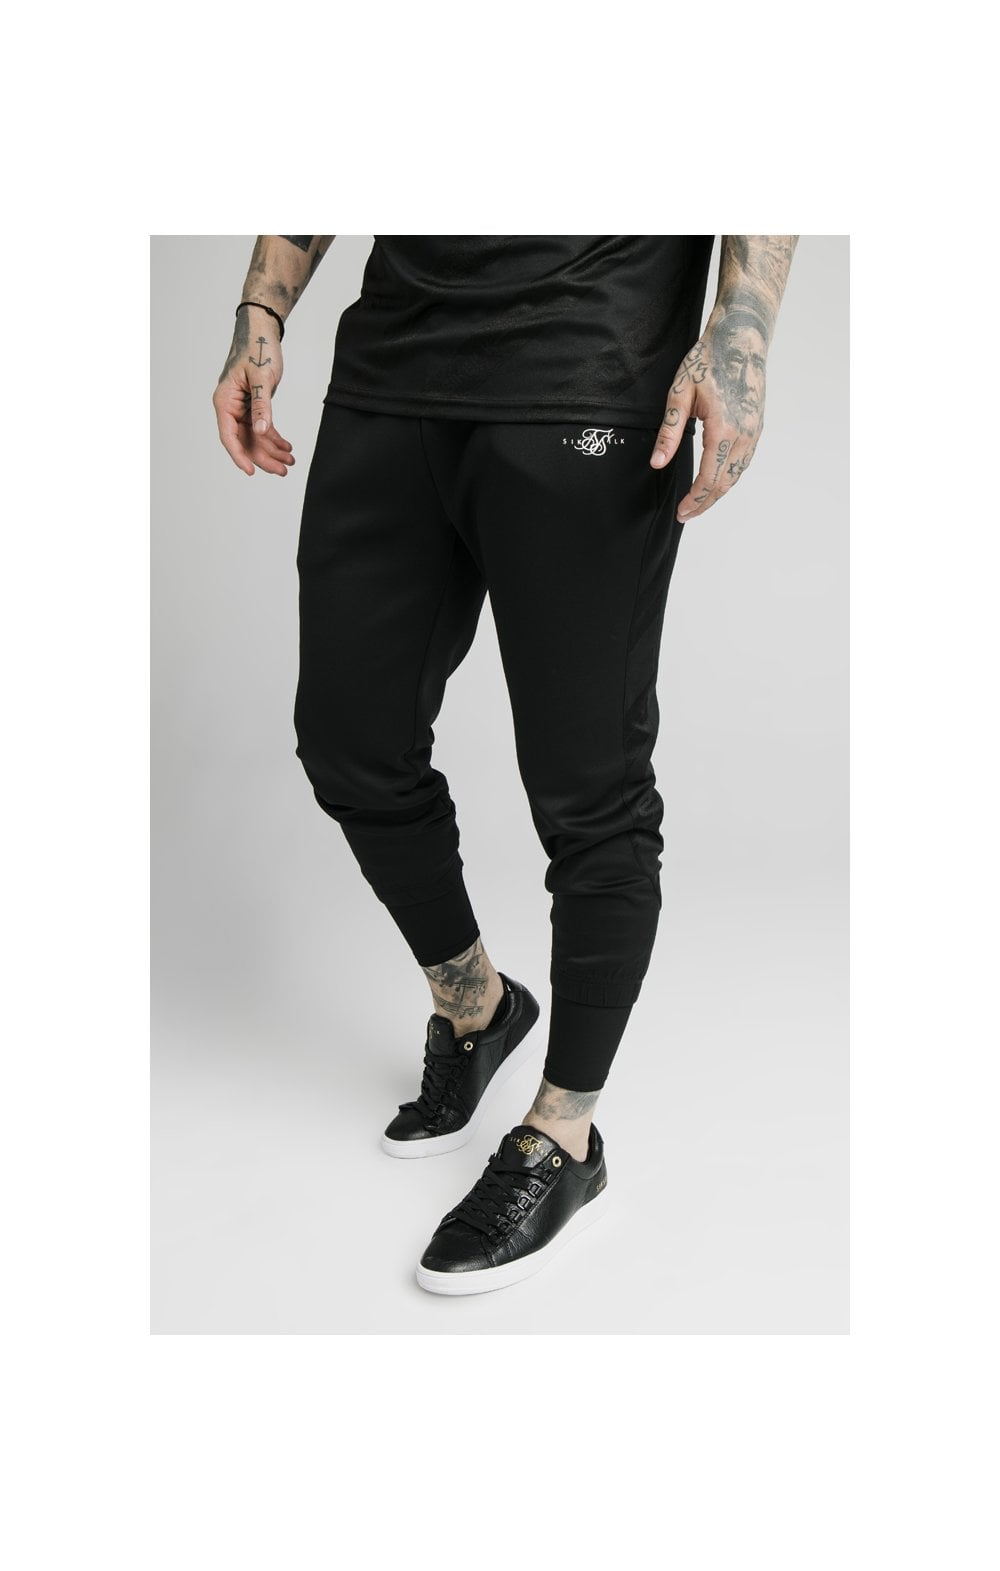 Load image into Gallery viewer, SikSilk Tranquil Dual Cuff Pants - Black & Grey